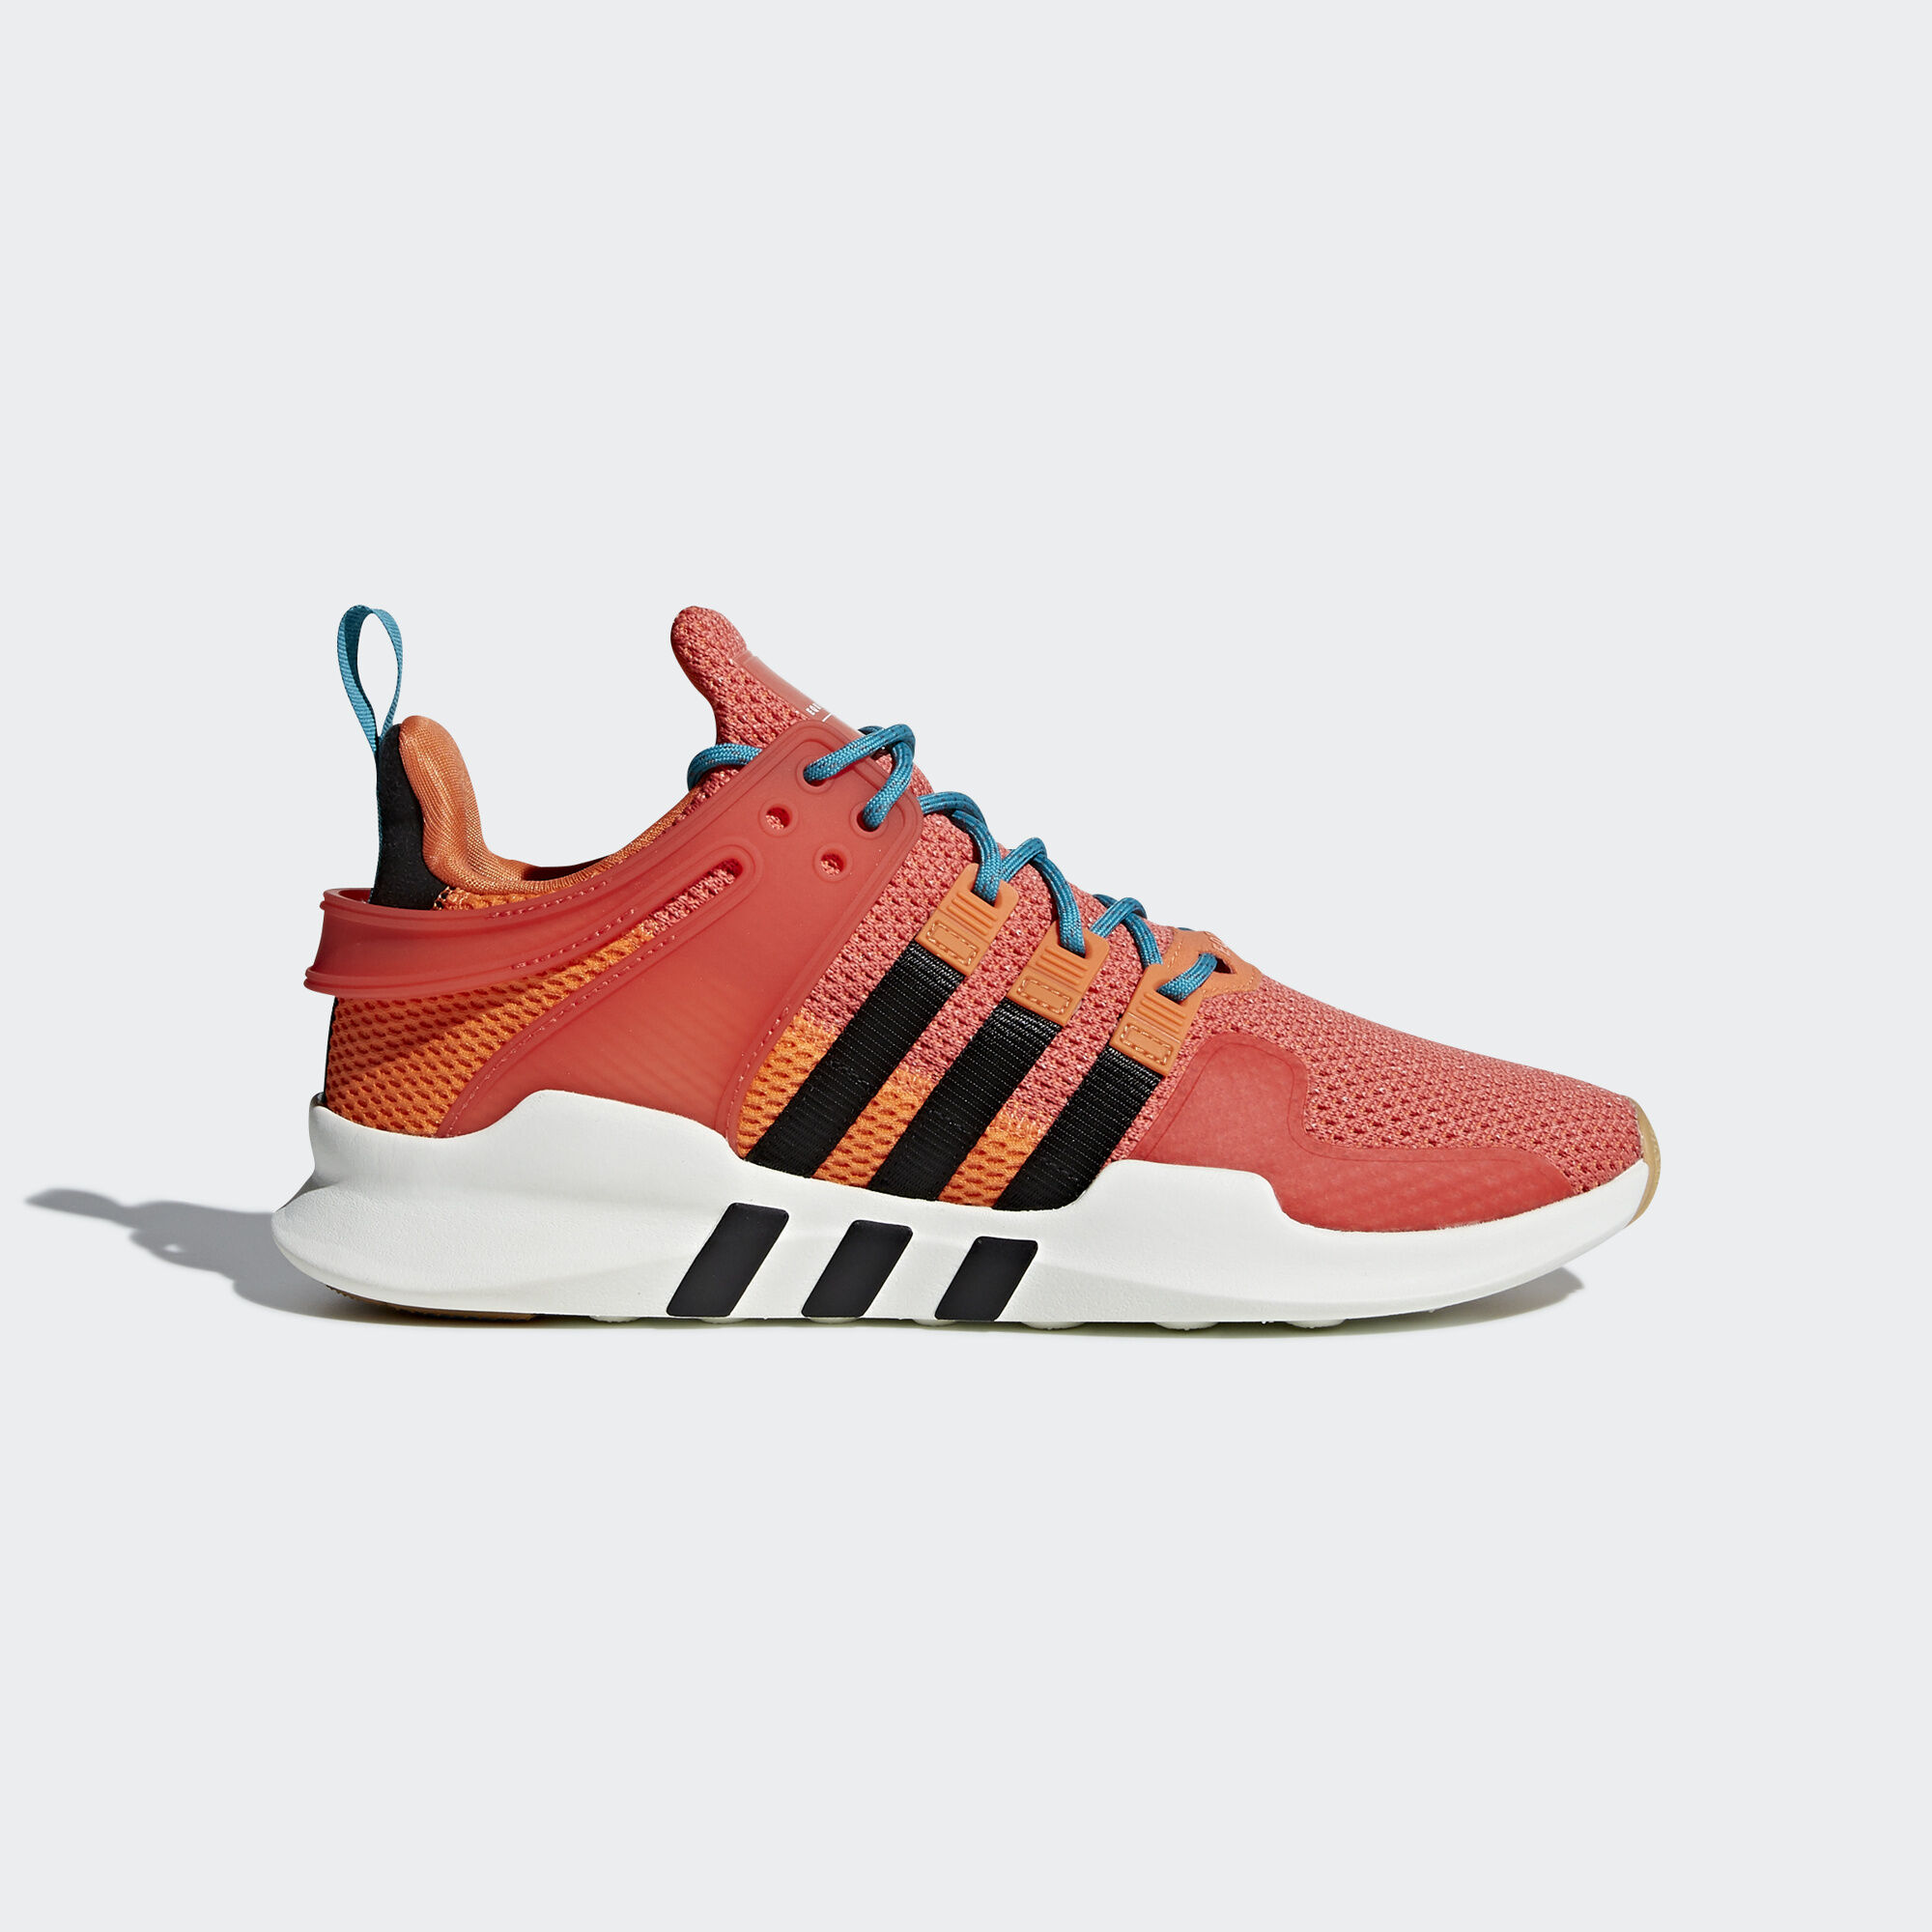 NEW adidas Originals EQT SUPPORT ADV SUMMER SHOES CQ3043 Trace Orange White a1